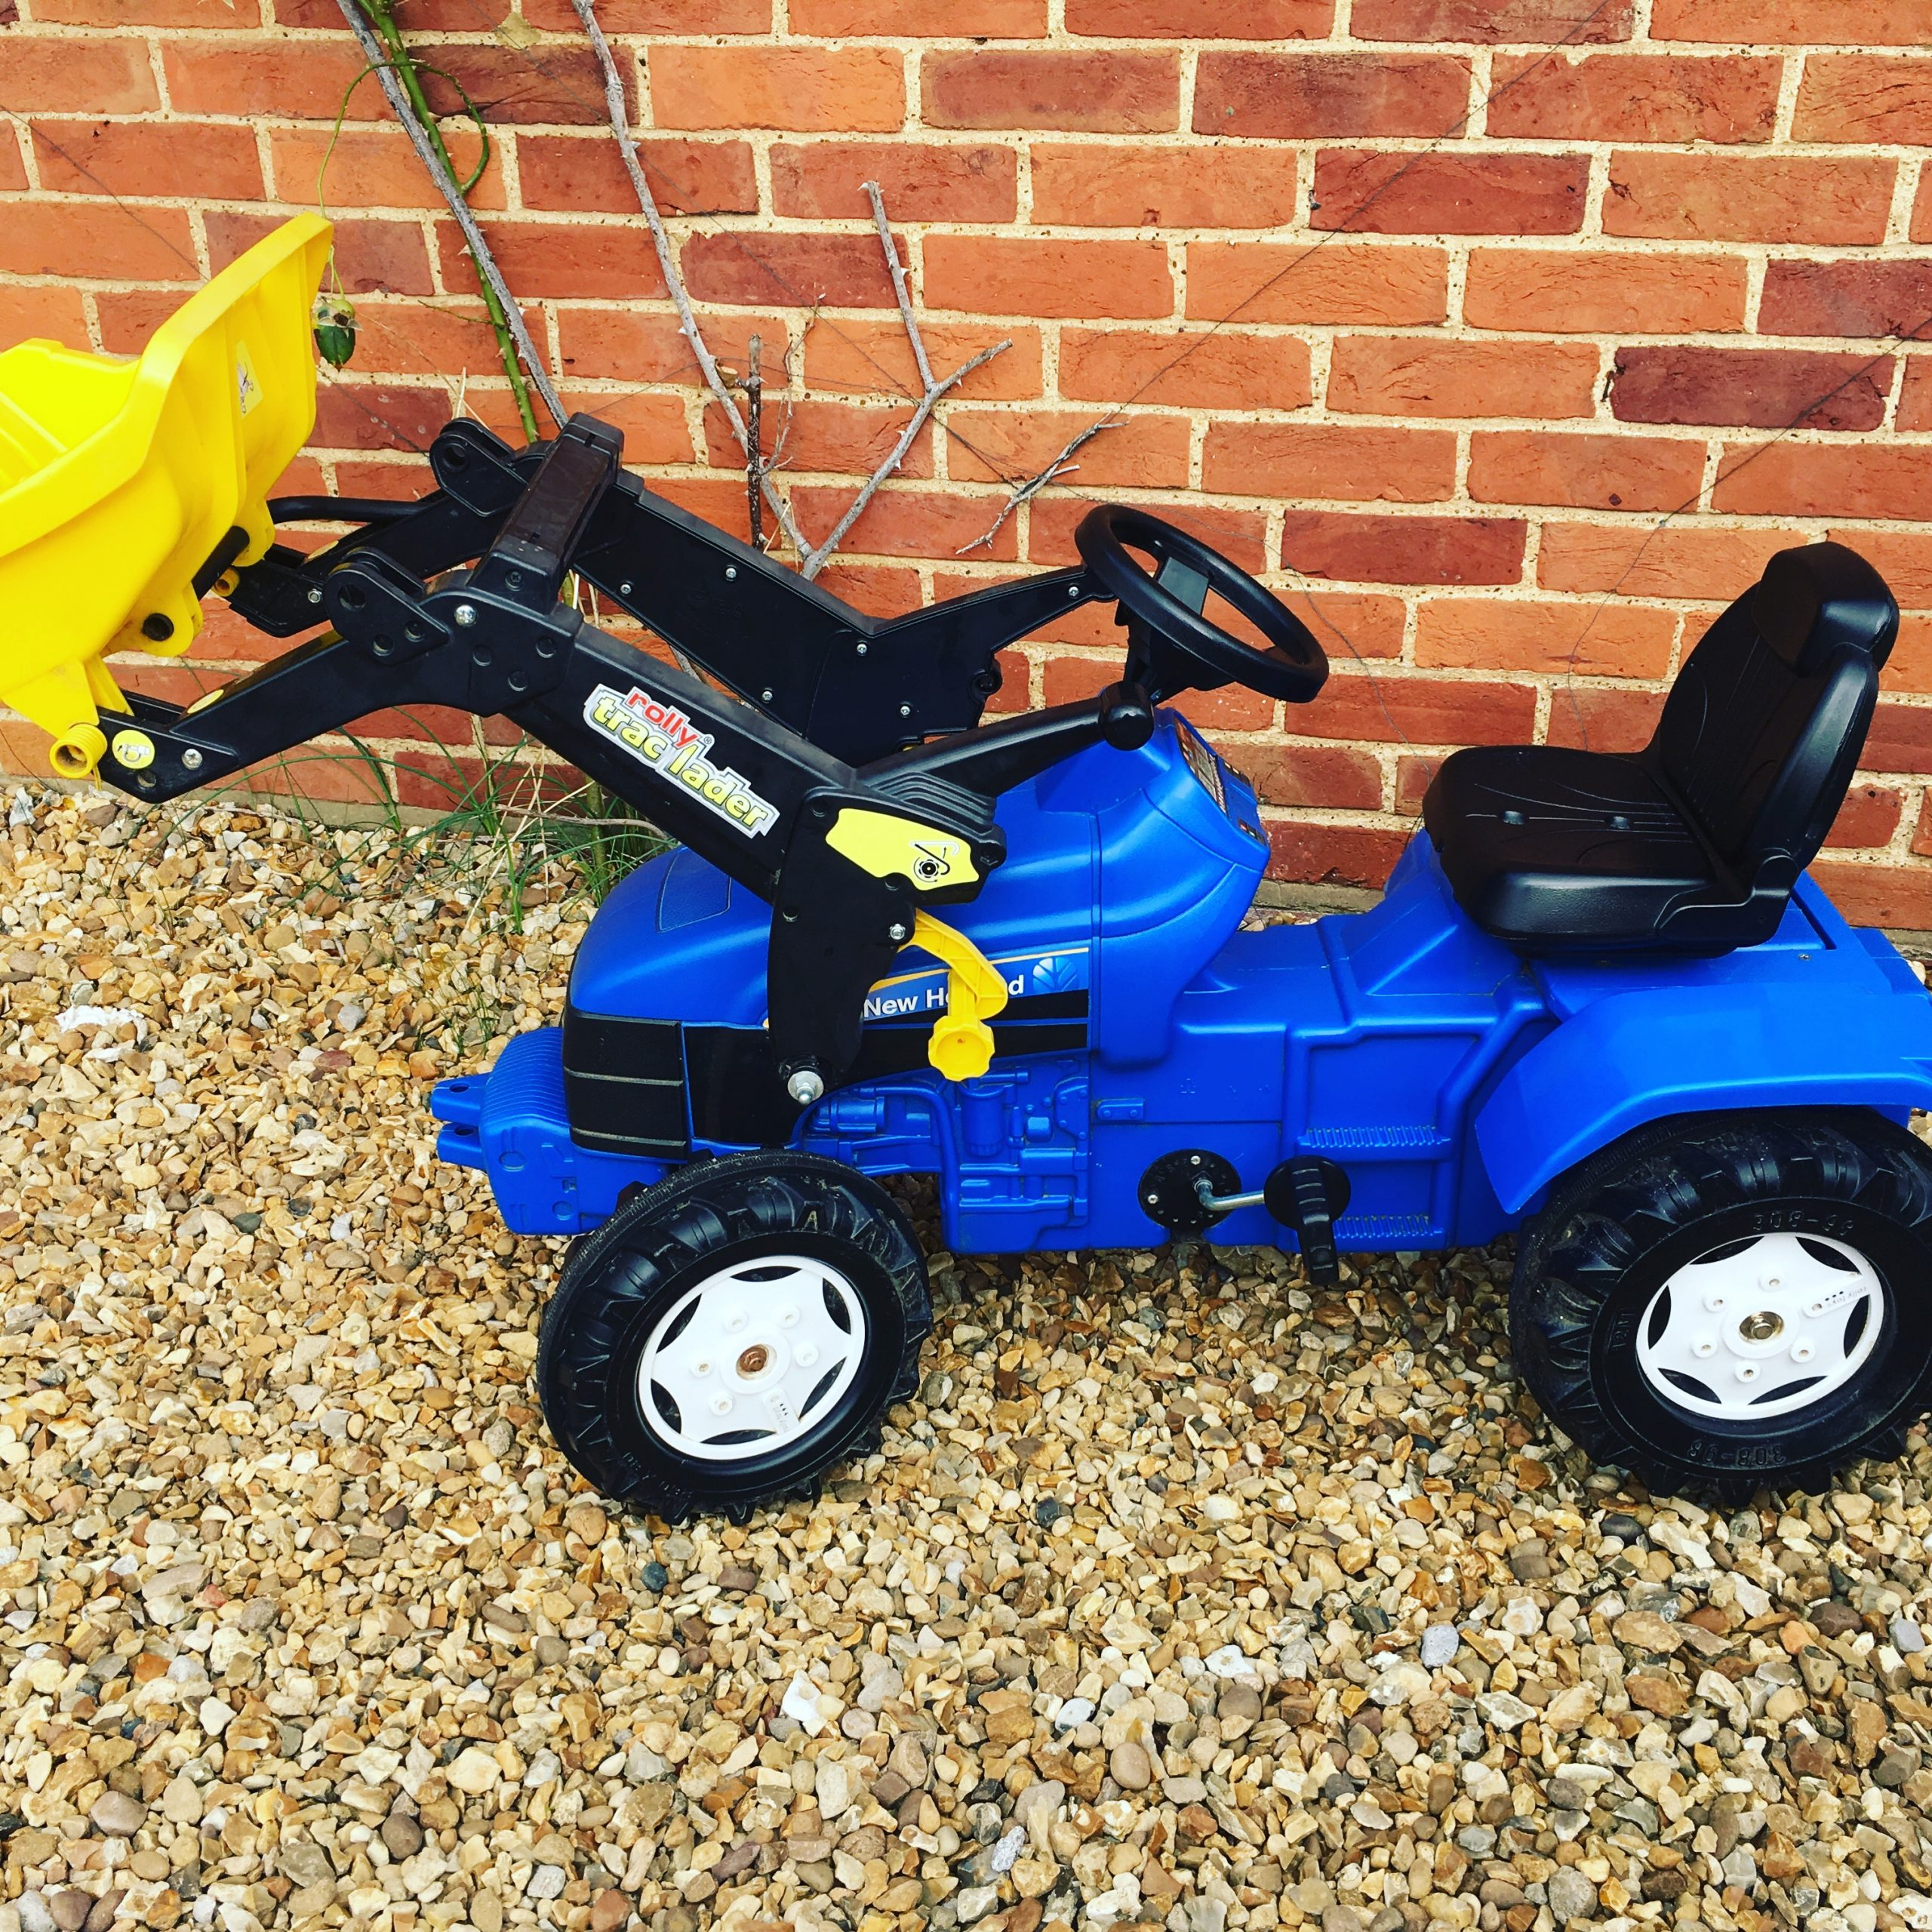 blue and yellow New Holland tractor with front scoop